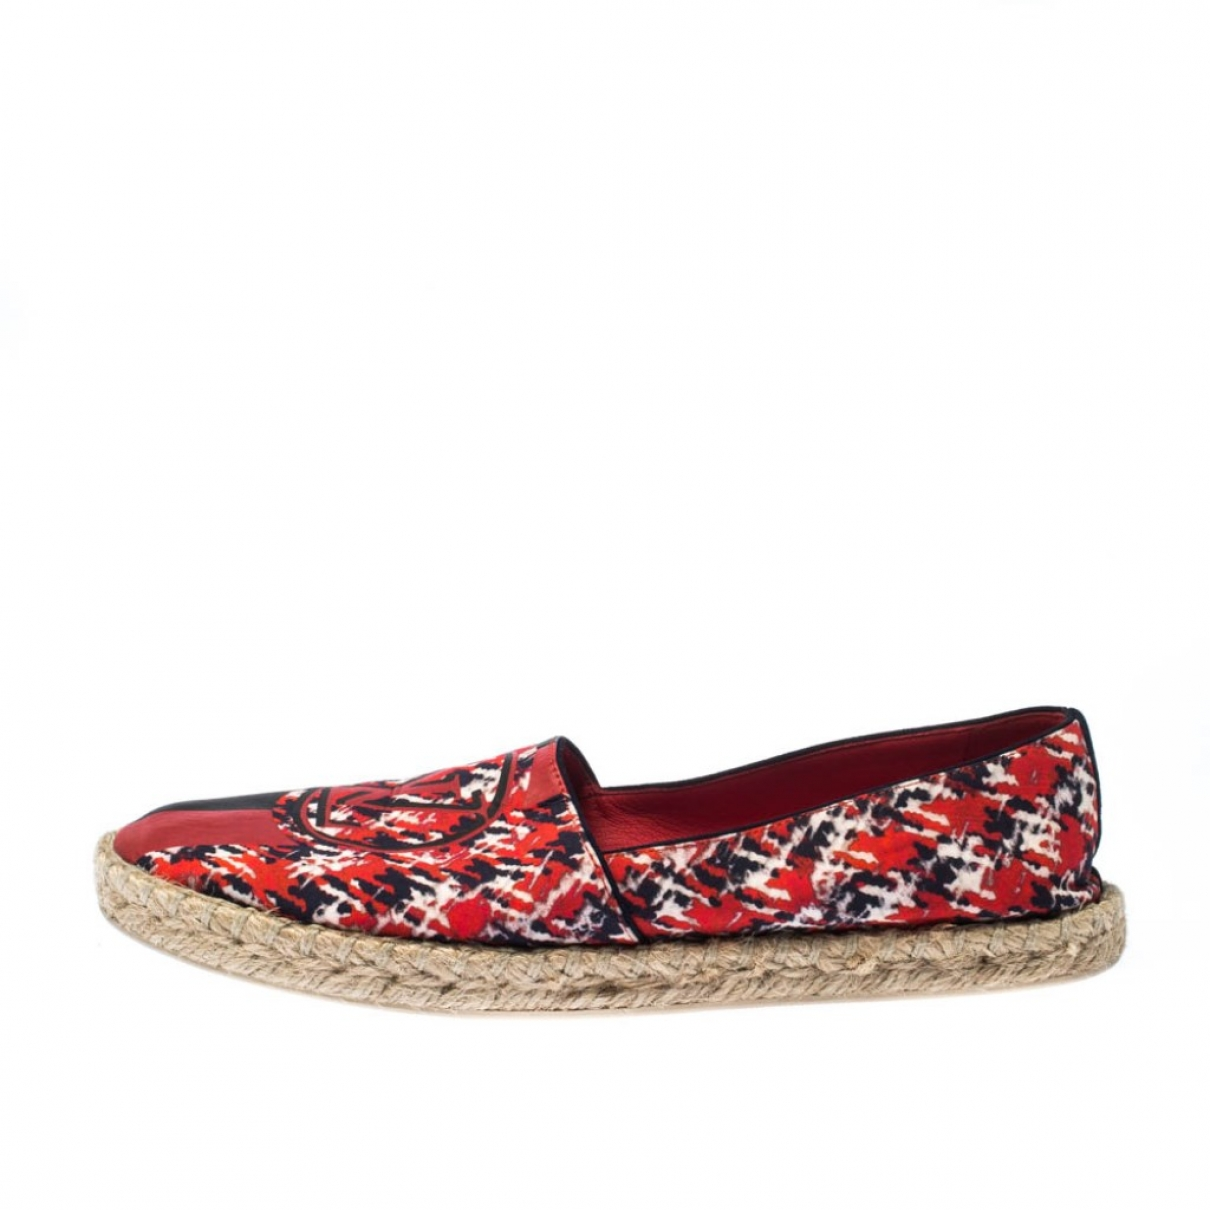 Louis Vuitton \N Espadrilles in  Rot Leinen